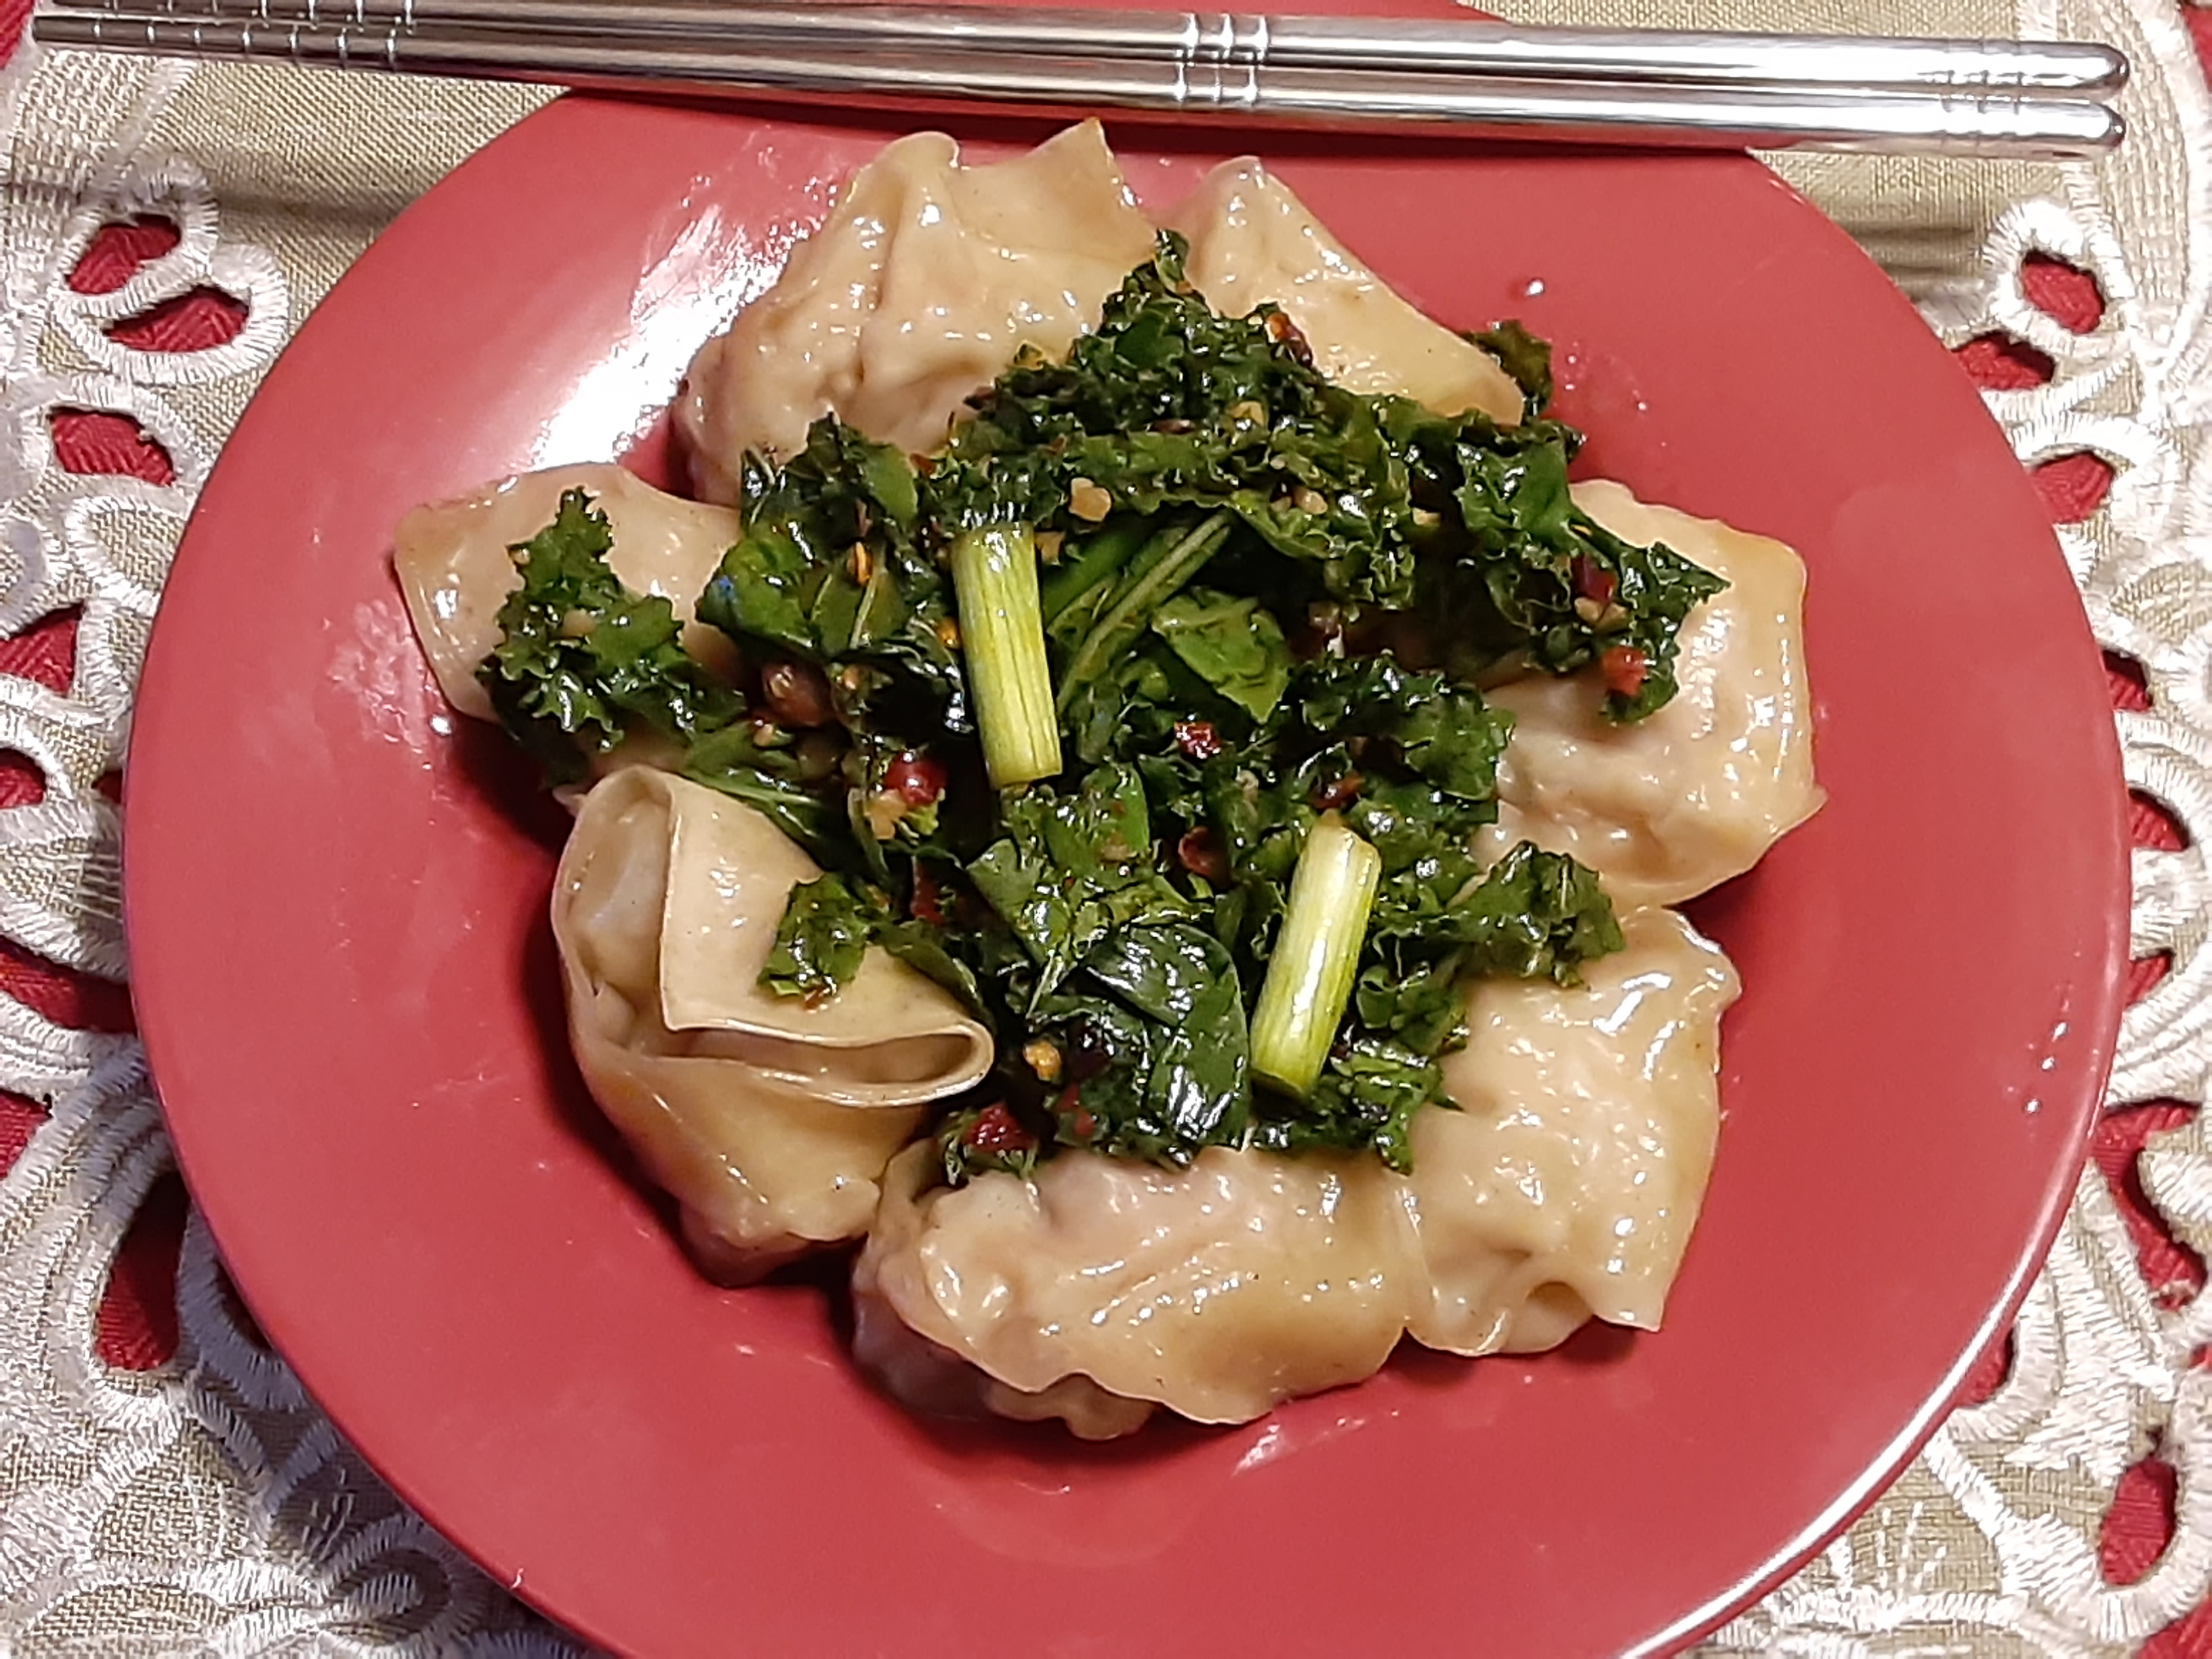 Chili-Pepper Wonton